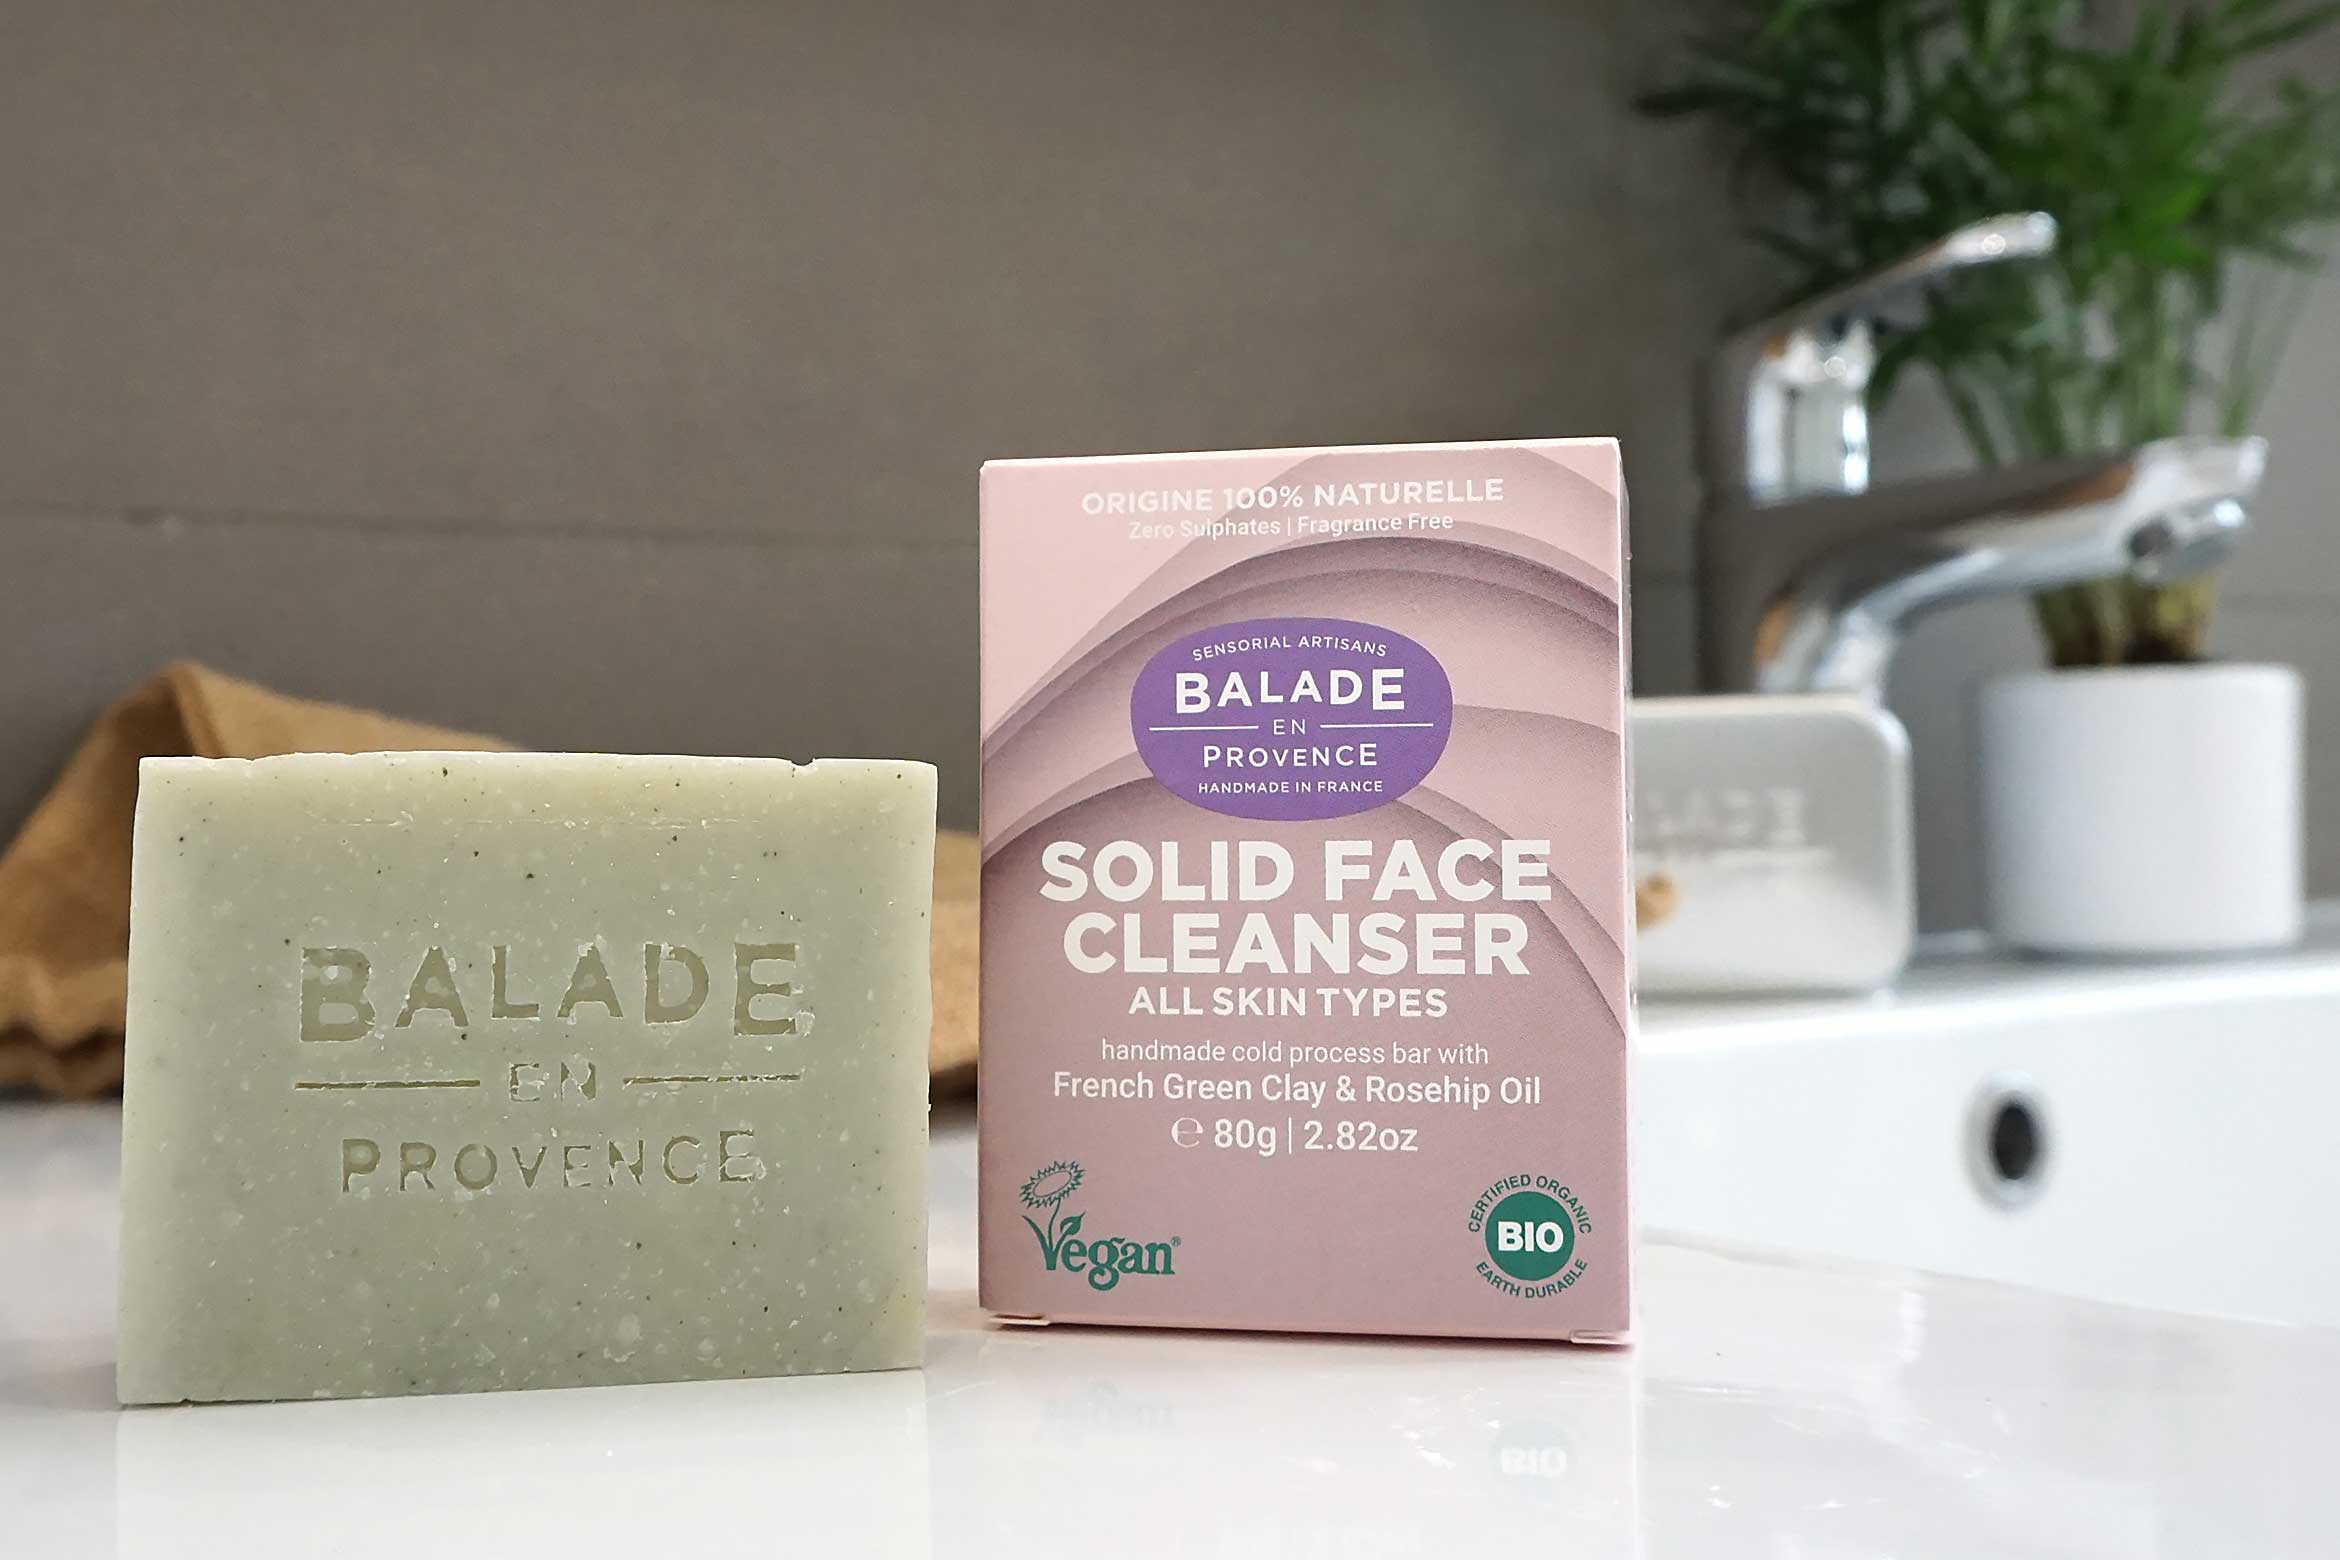 balade en provence solid face cleanser review